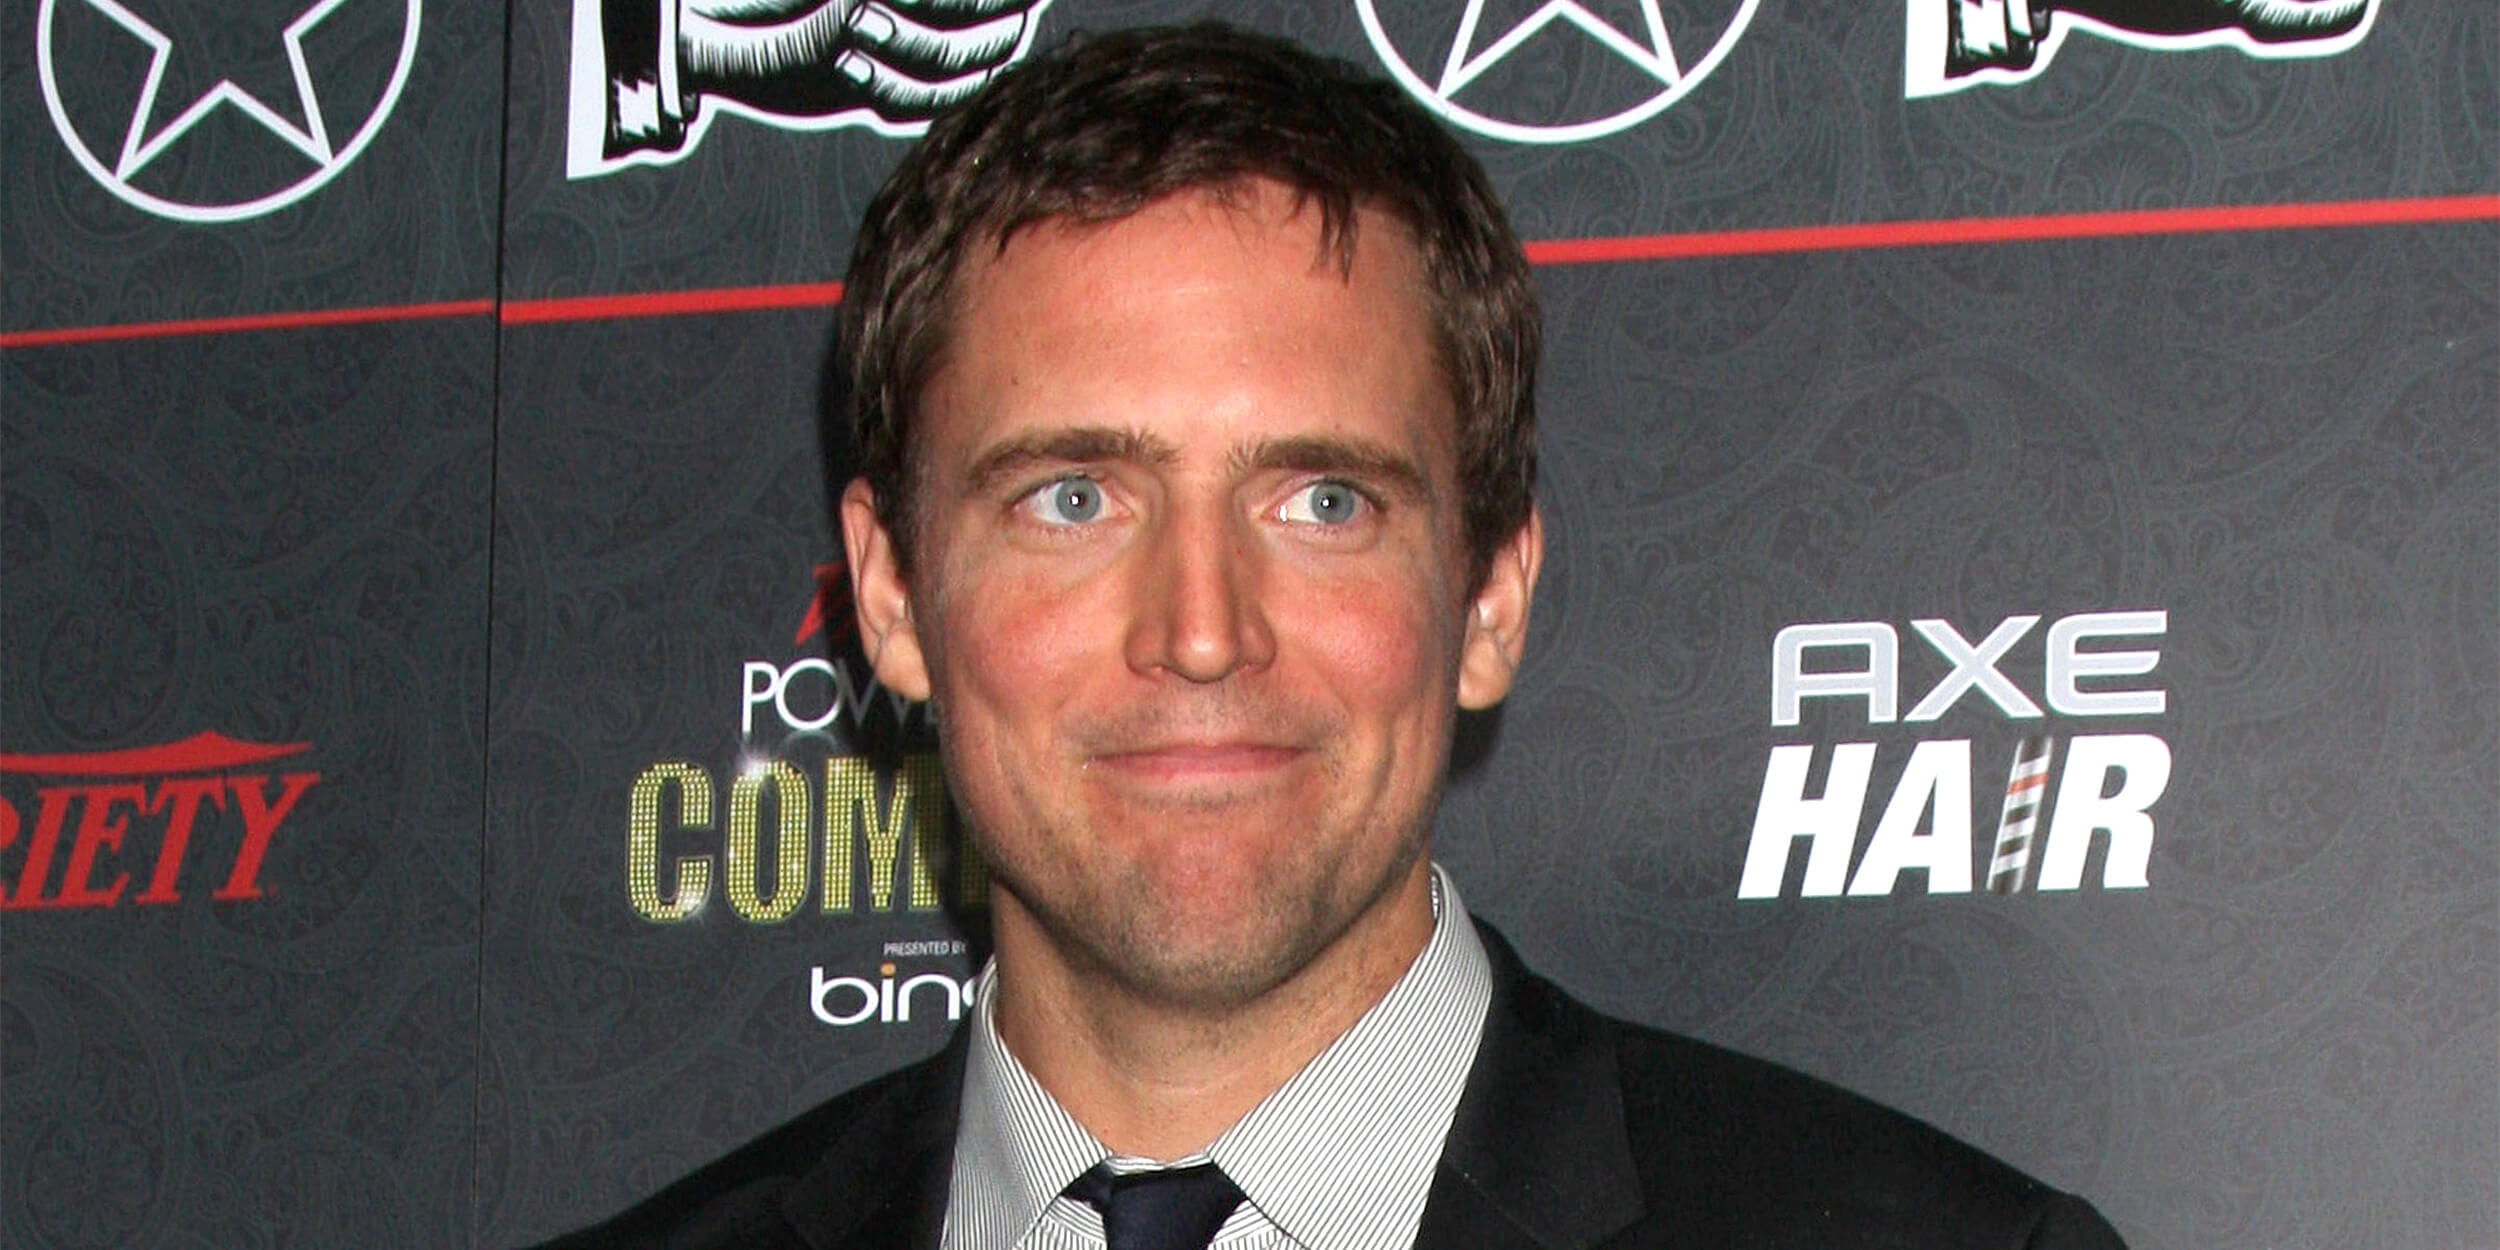 Owen Benjamin has a net worth collection of $800,000